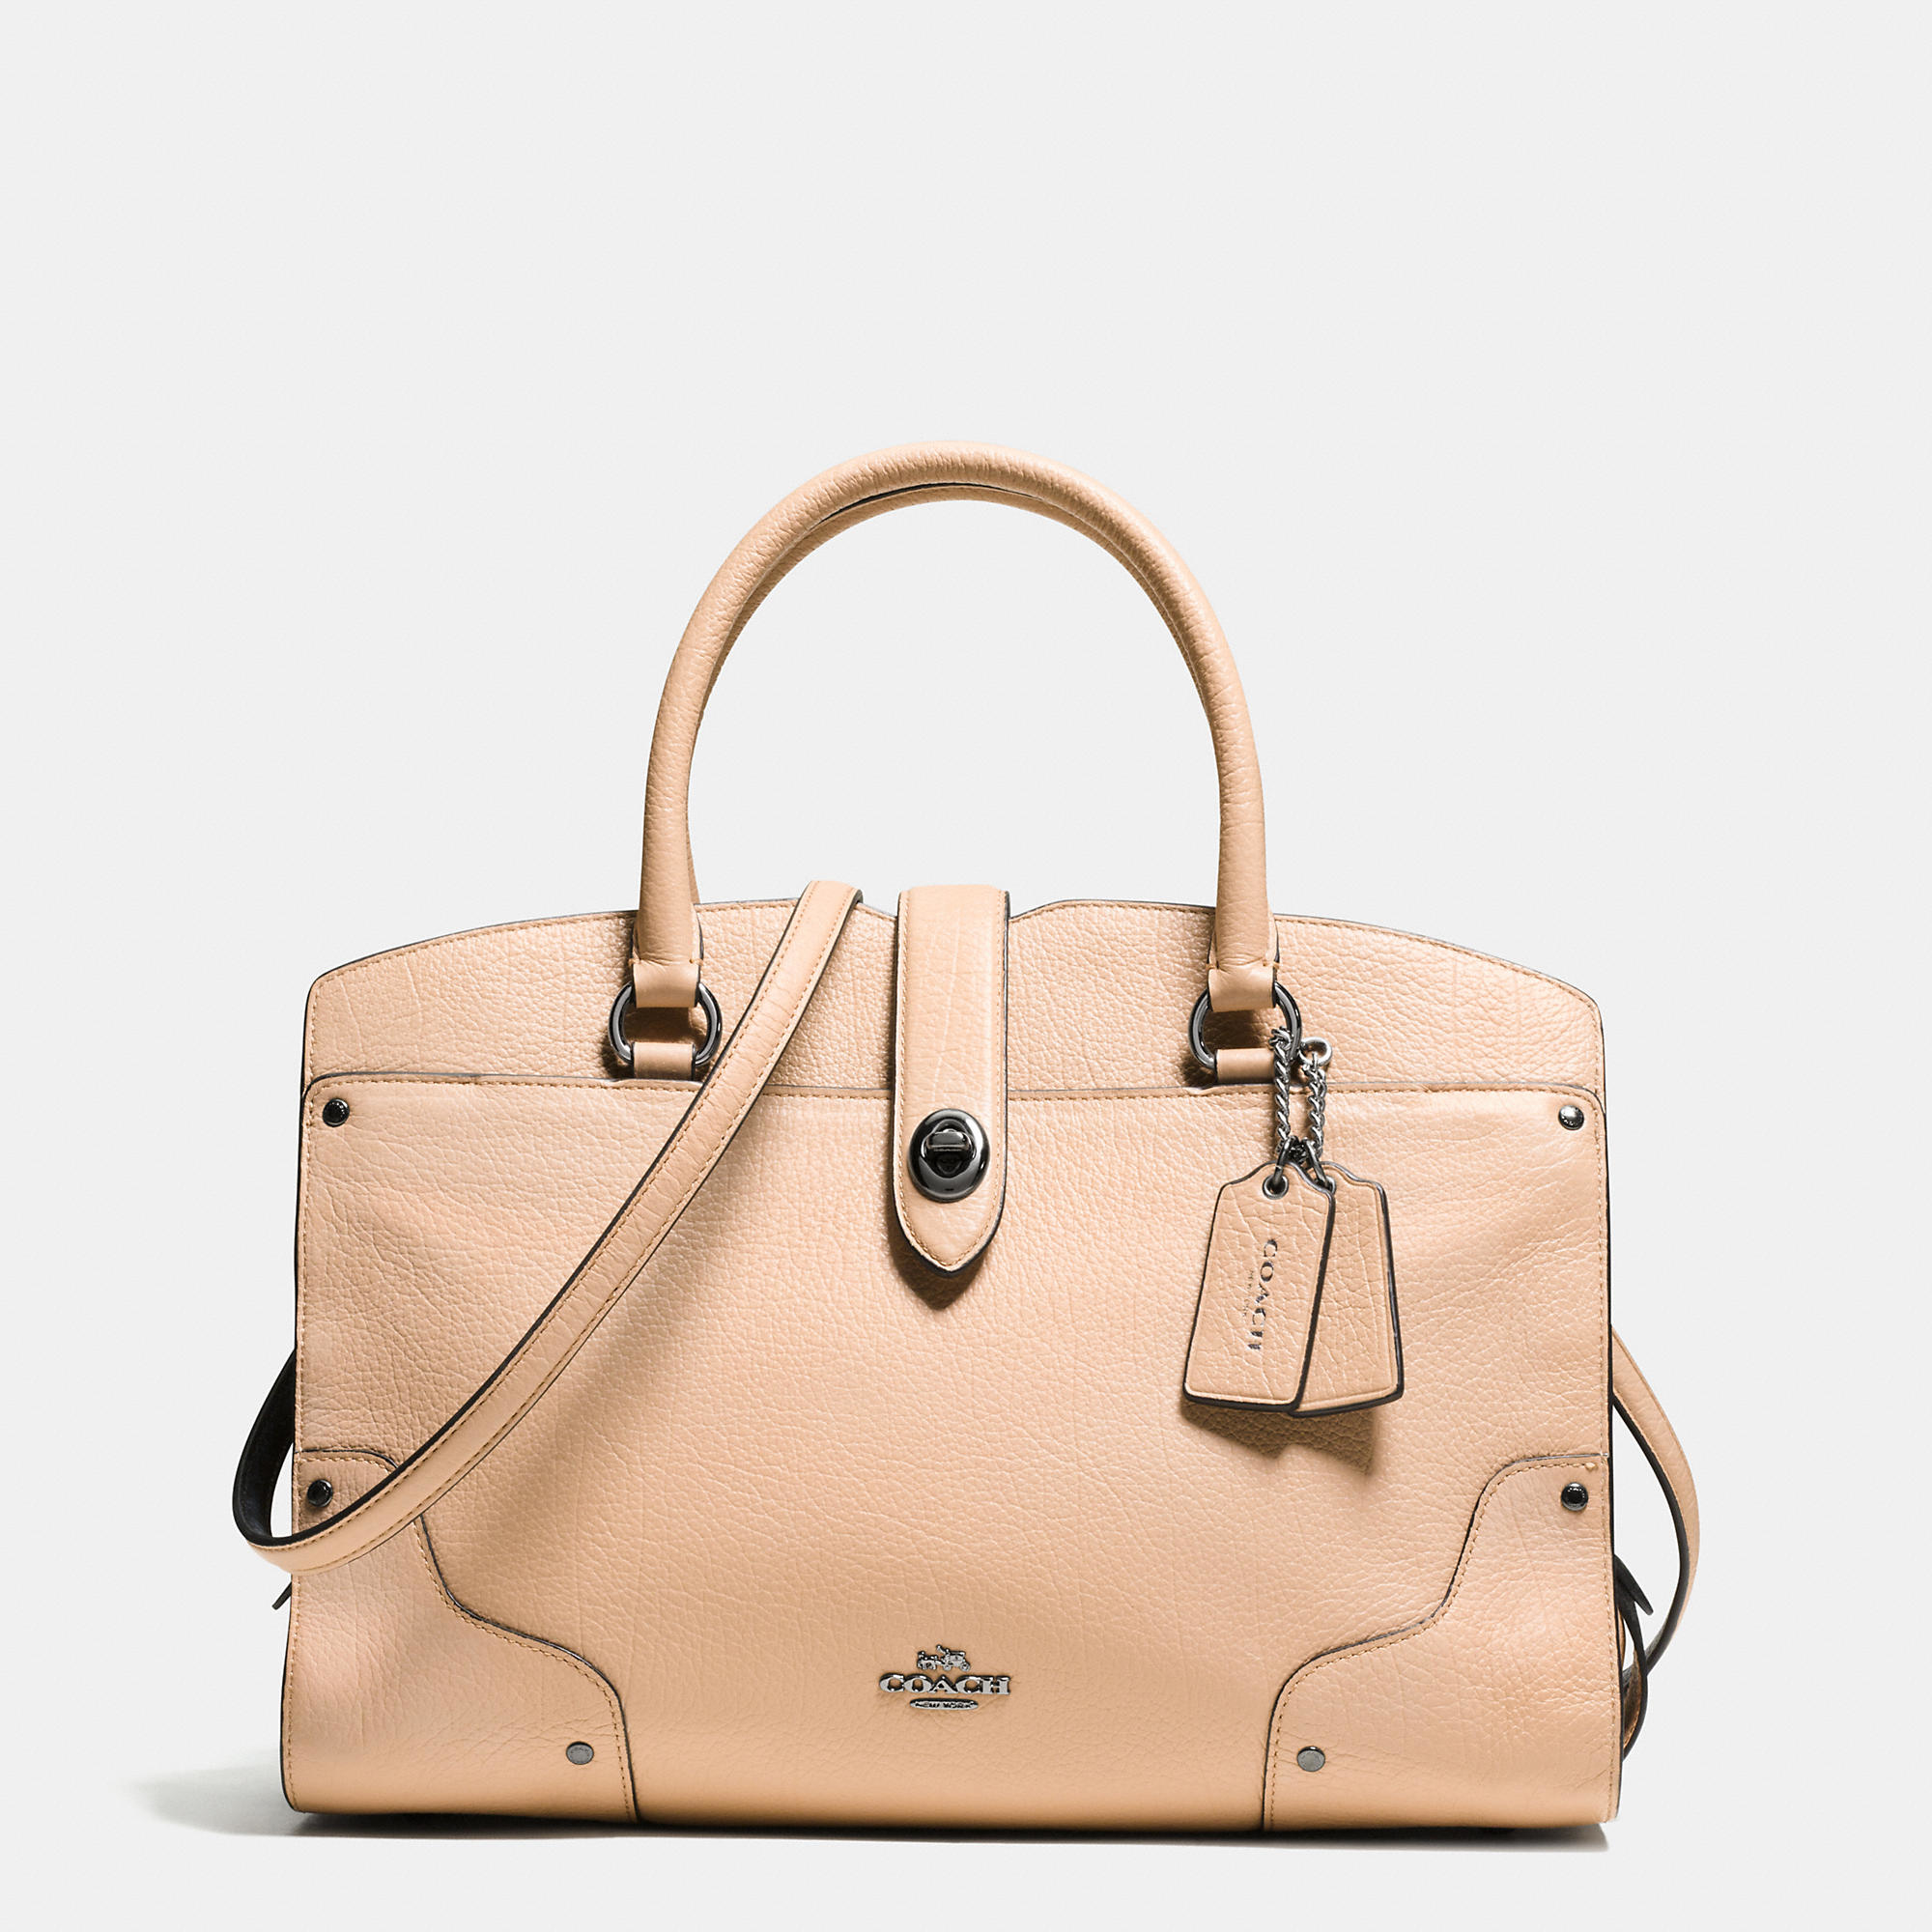 f5dbcf355 ... promo code for lyst coach mercer satchel 30 in colorblock leather b5487  04e5f